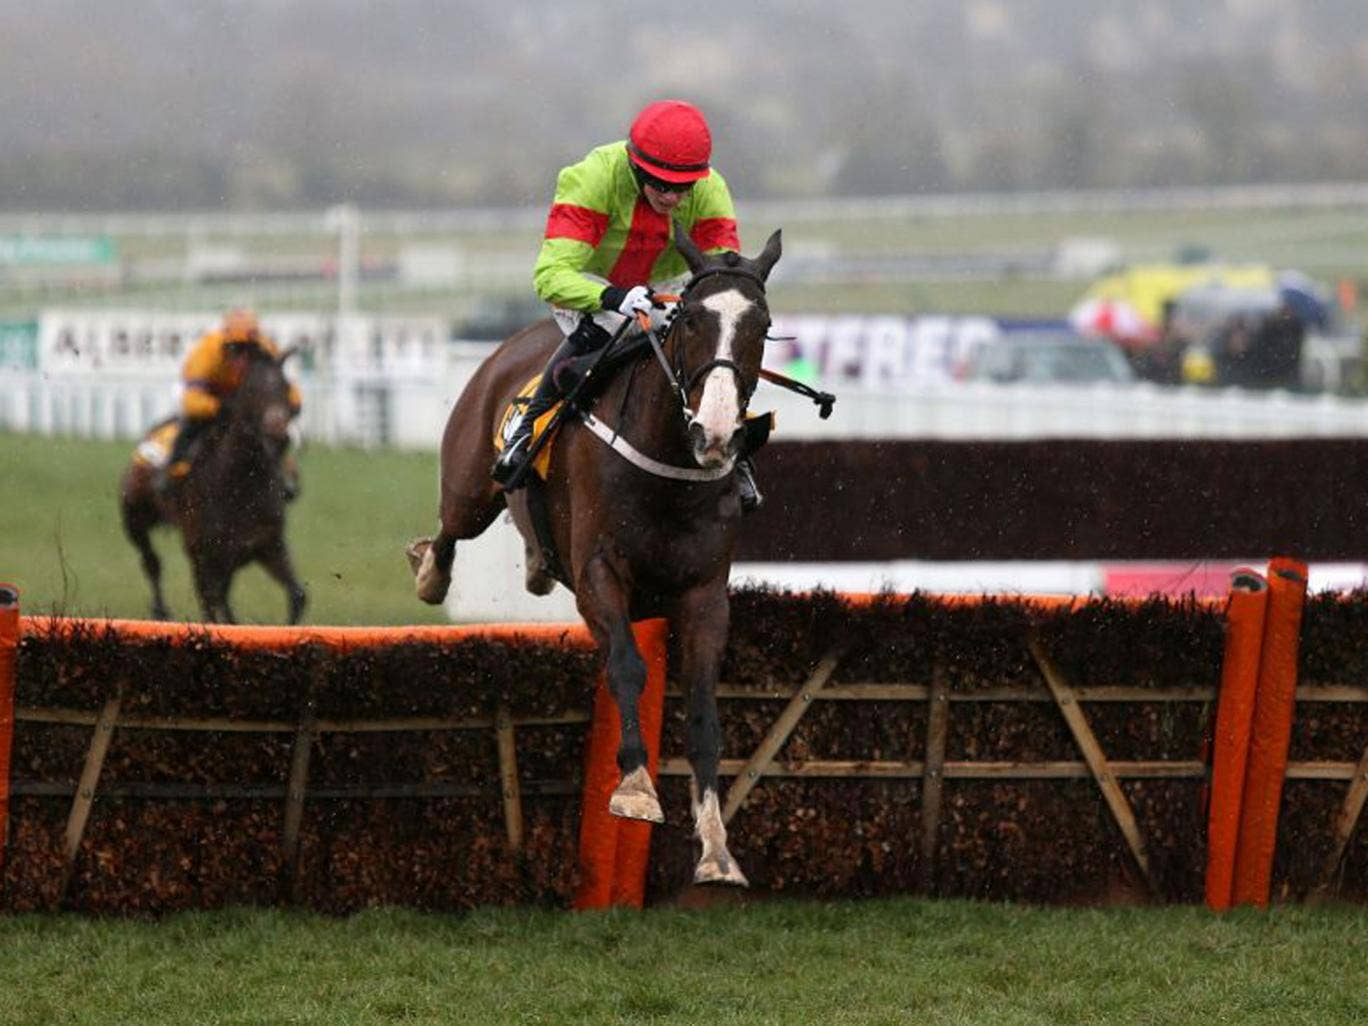 Our Conor won the Triumph Hurdle by a stunning 15 lengths